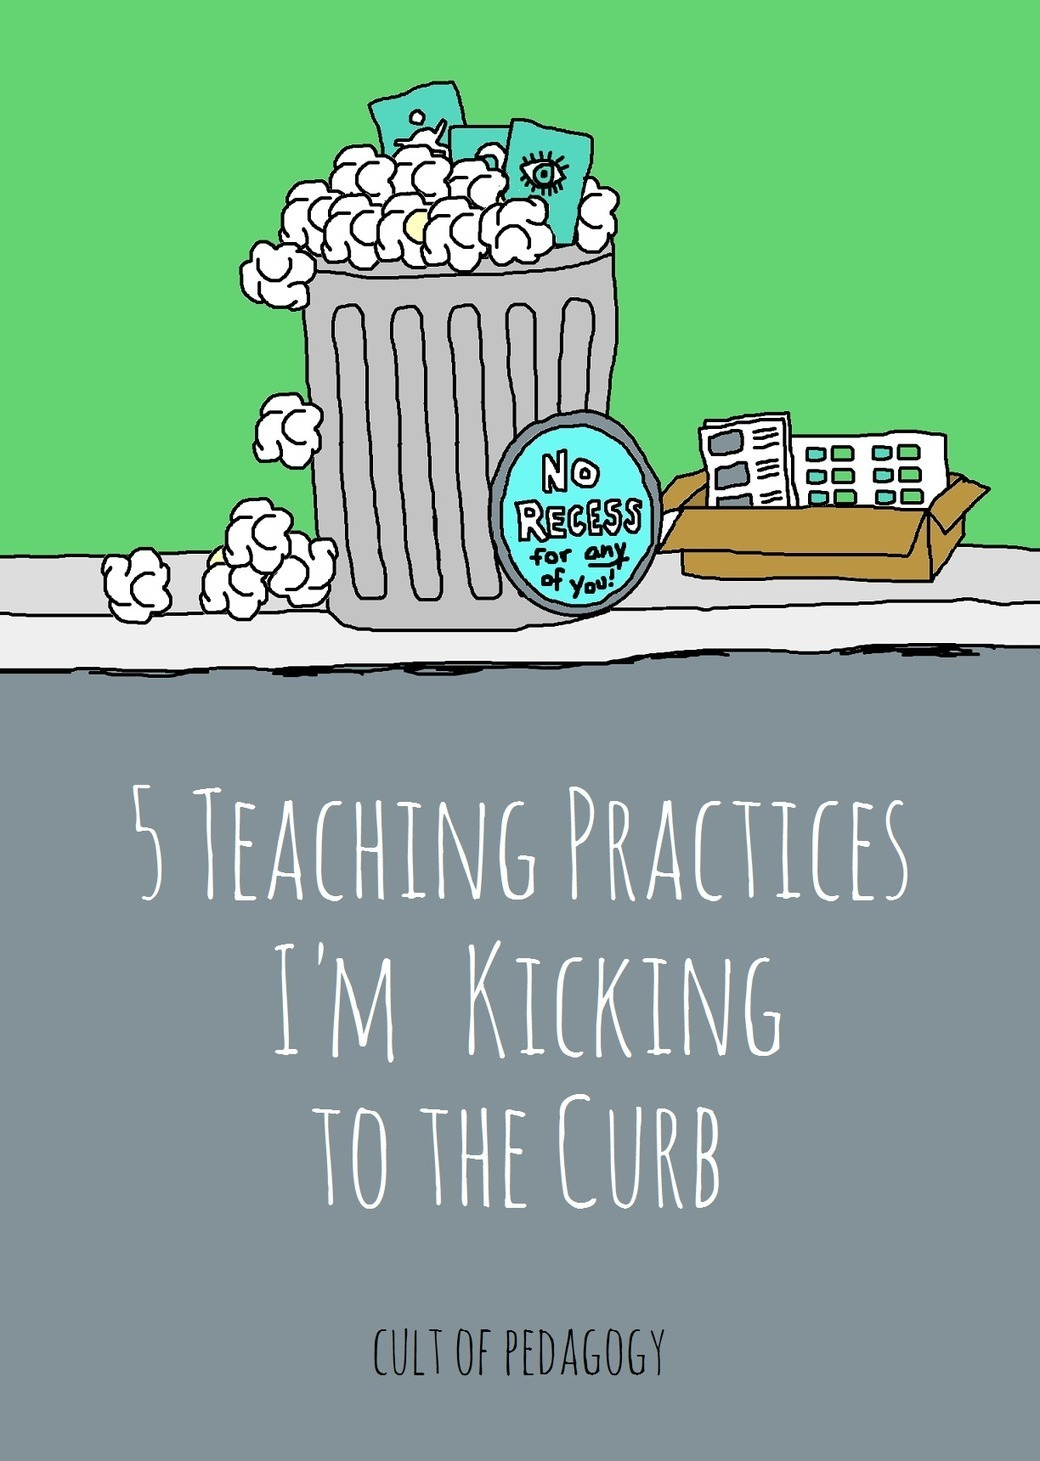 Definition of 'teaching practice'